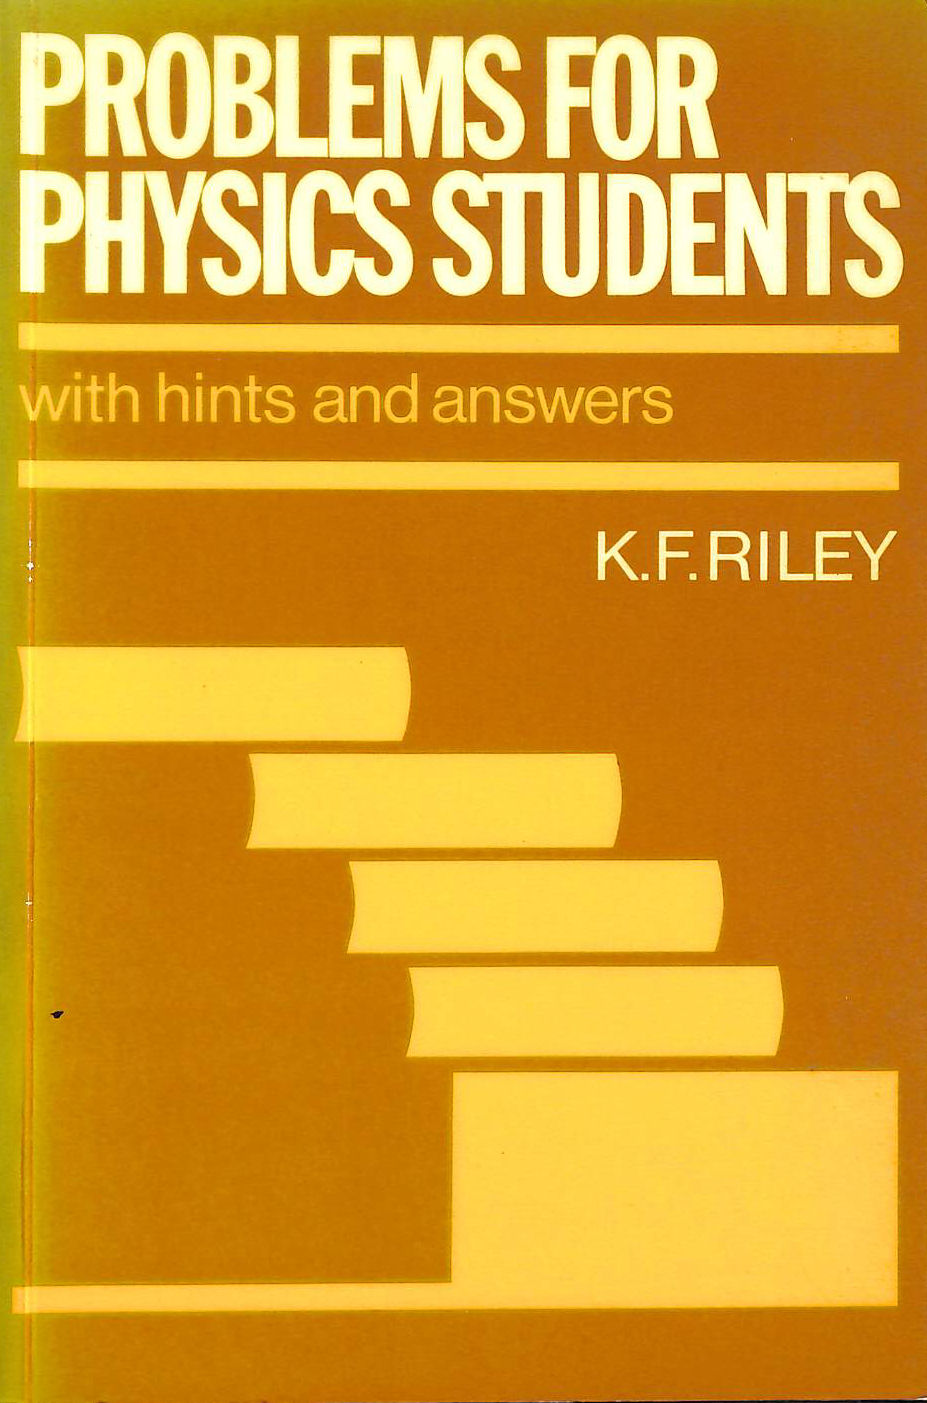 Image for Problems For Physics Students: With Hints And Answers